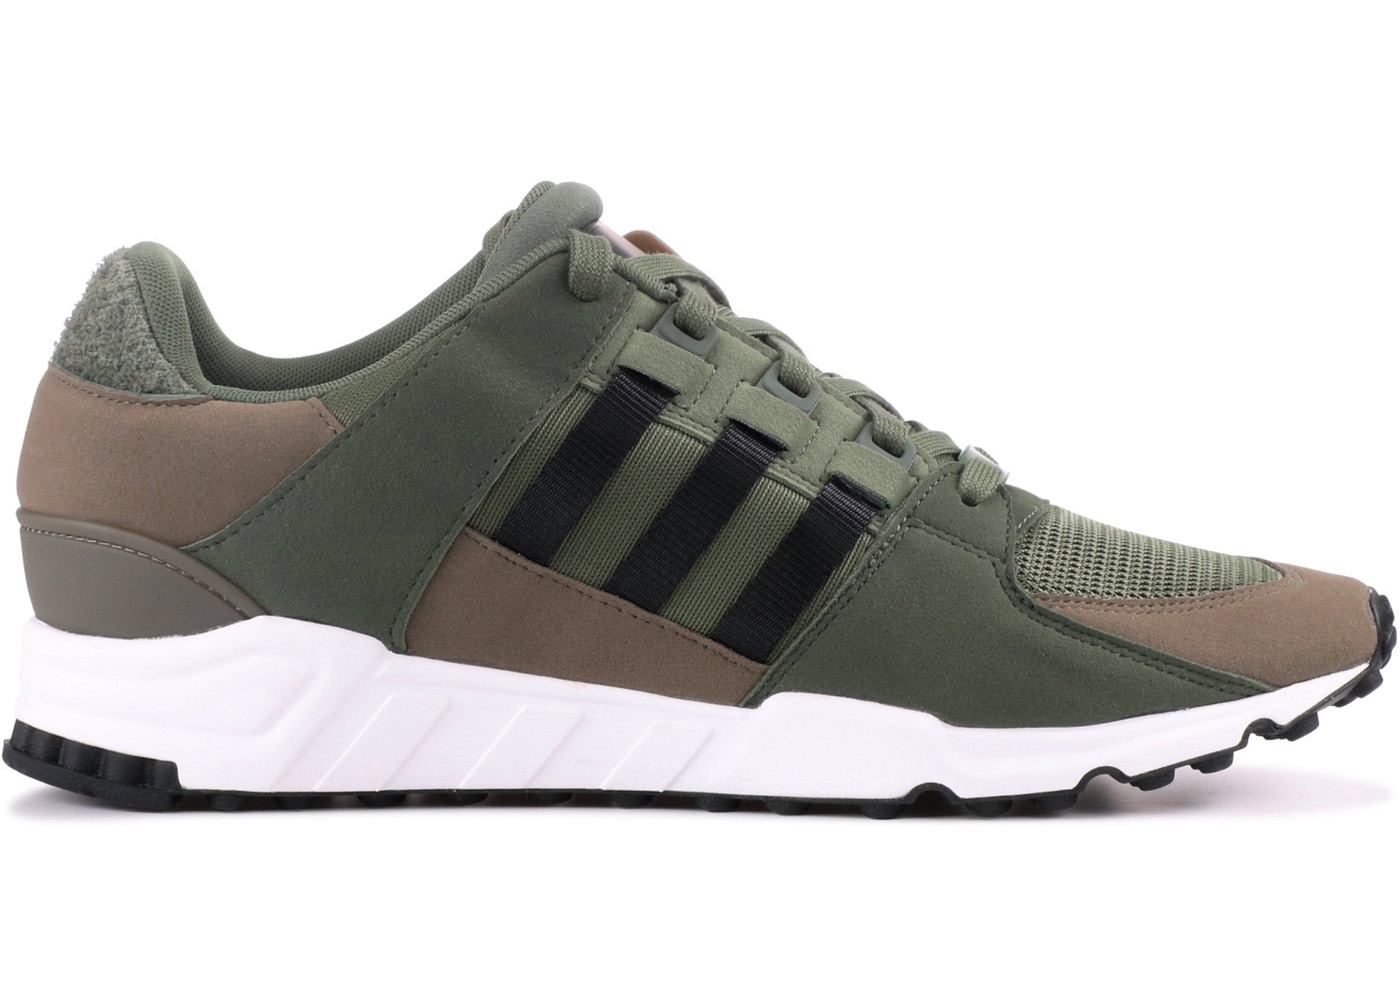 adidas EQT Support 93 Olive Green